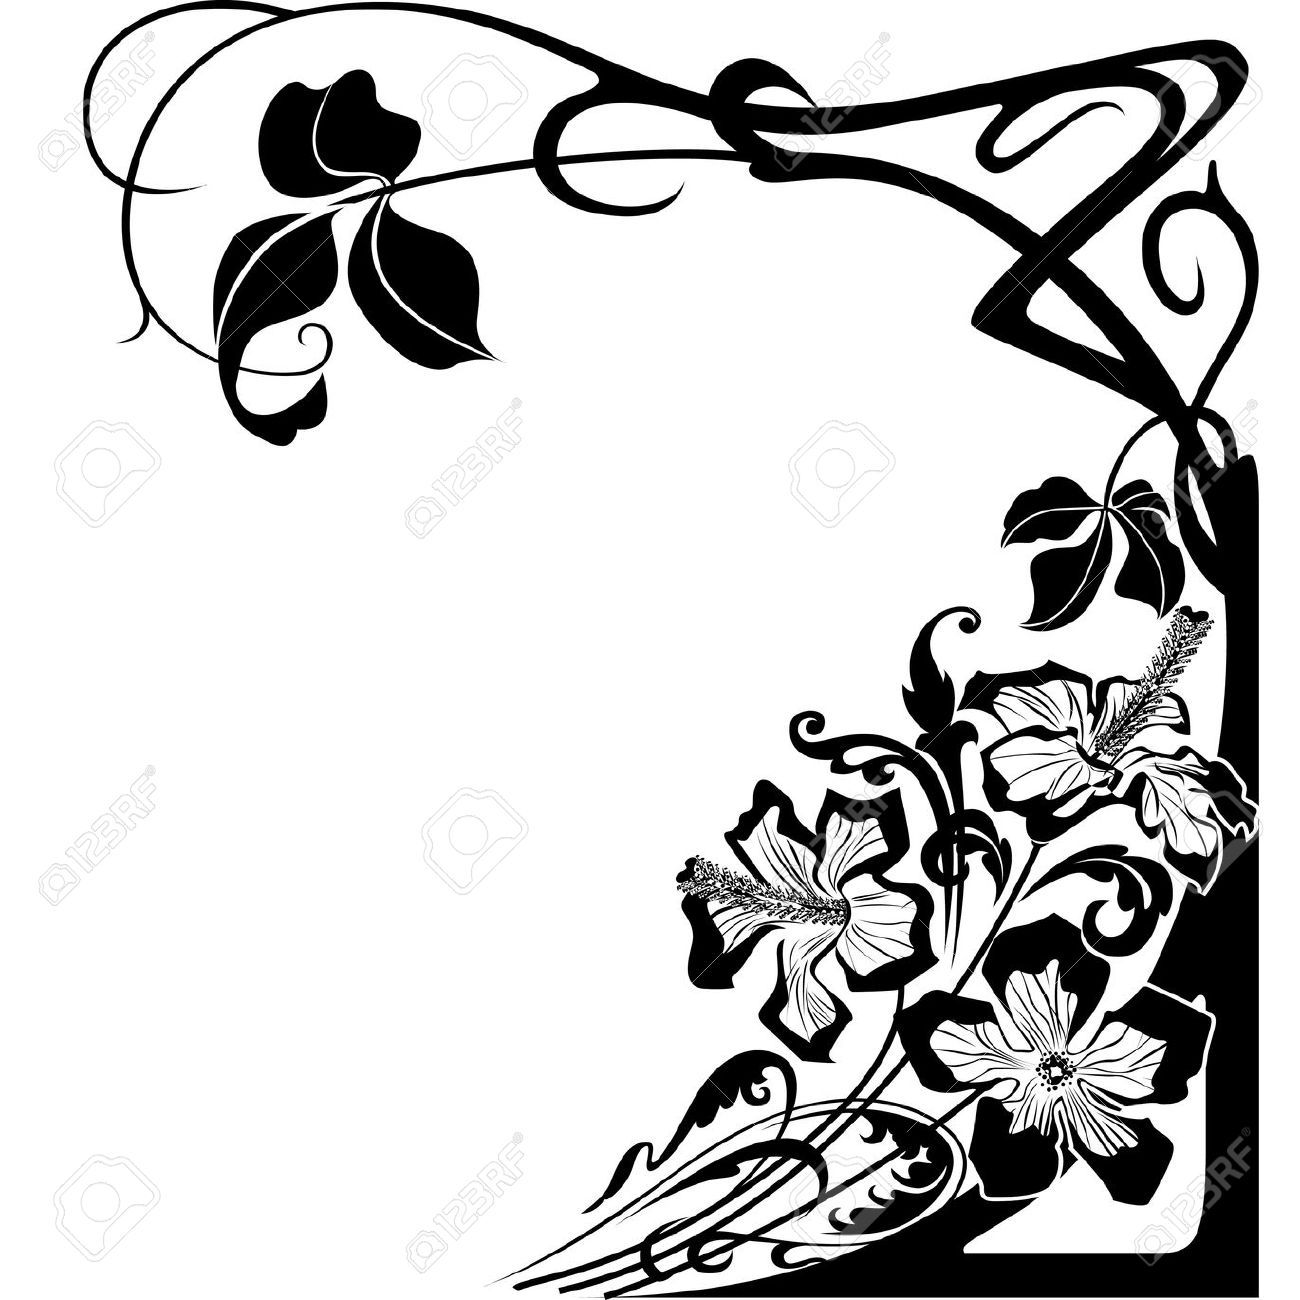 Art nouveau images stock pictures royalty free art for Art nouveau shapes